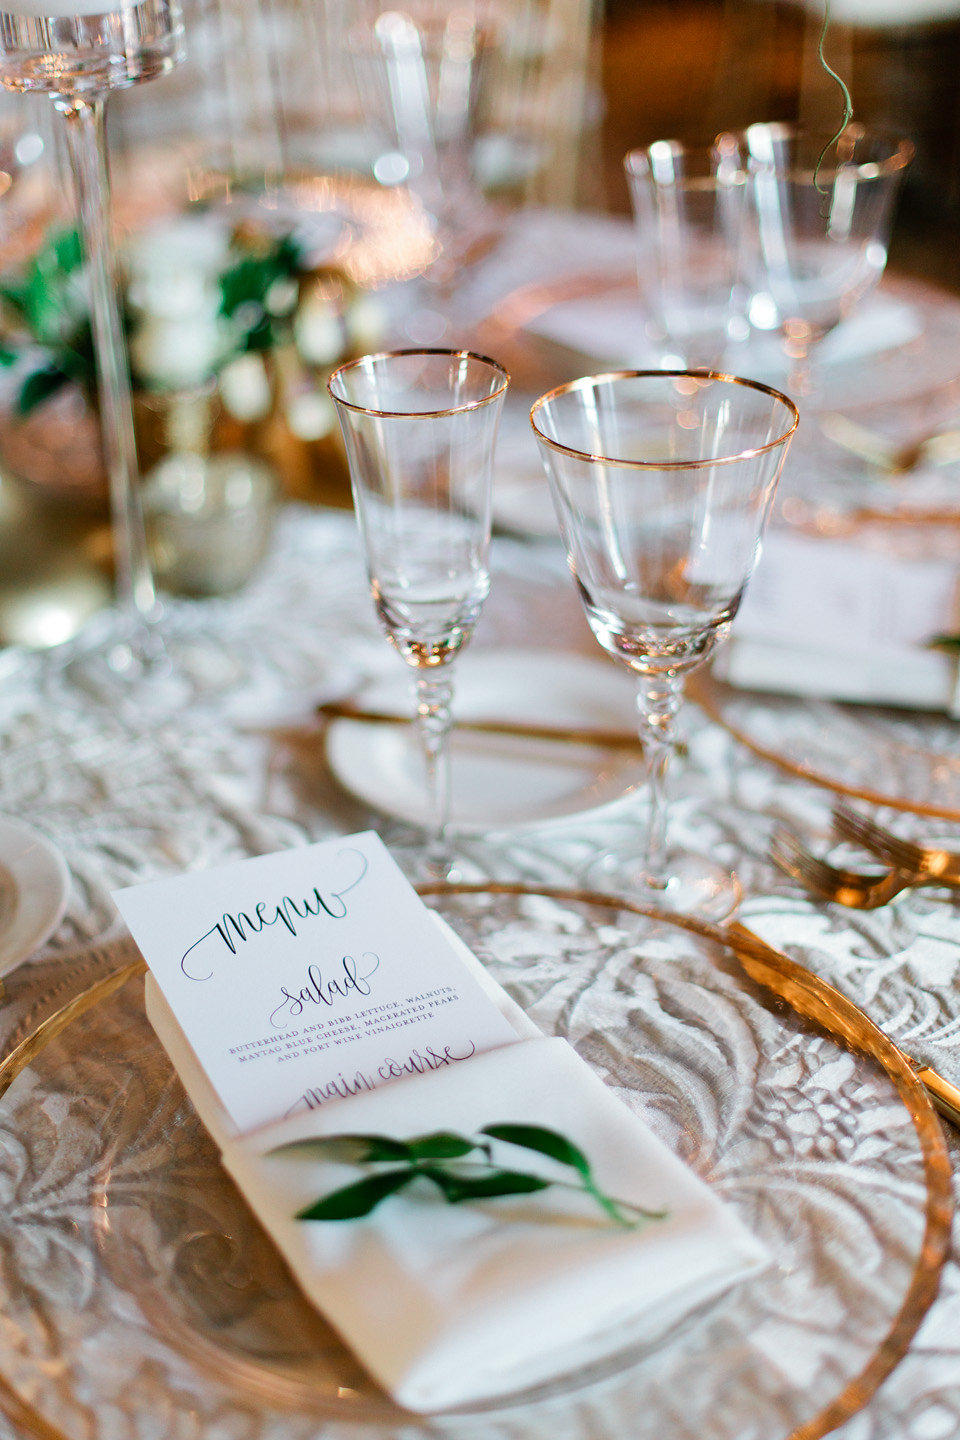 Blush and White Reception Tablescape  Gold Rimmed Glass Chargers with Menu and Greenery Sprig  Blush Wedding at TPC Sawgrass Wedding Ponte Vedra Beach  Jacksonville Wedding Planner Blue Ribbon Weddings  Jacksonville Wedding Photographer Debra Eby Photography  Wedding Ceremony & Reception at TPC Sawgrass Jacksonville